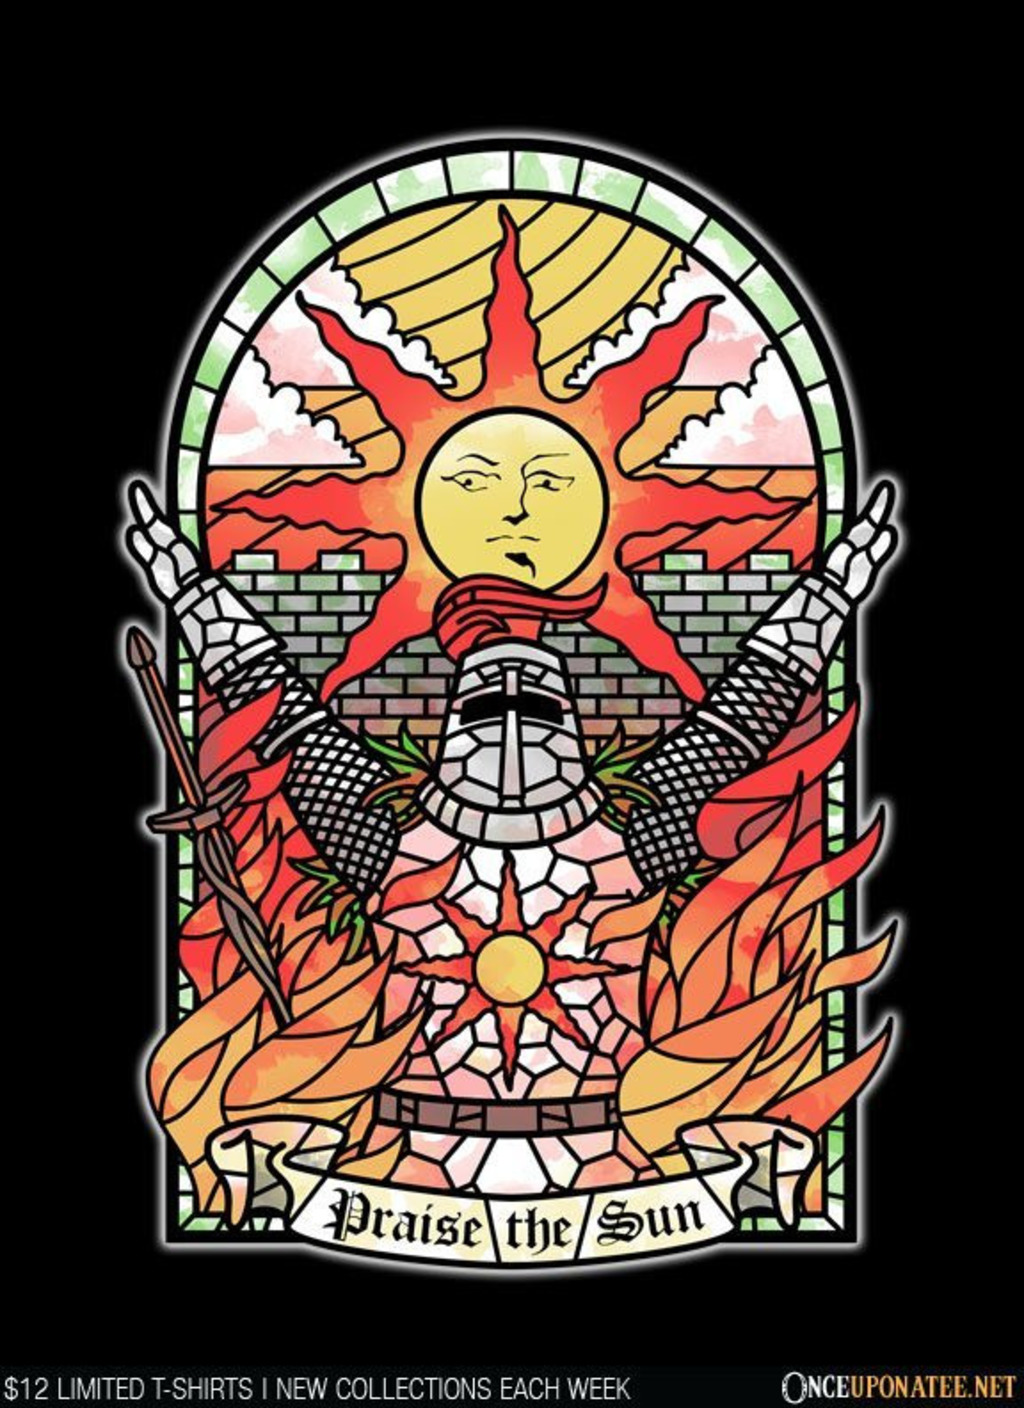 Once Upon a Tee: Church of the Sun